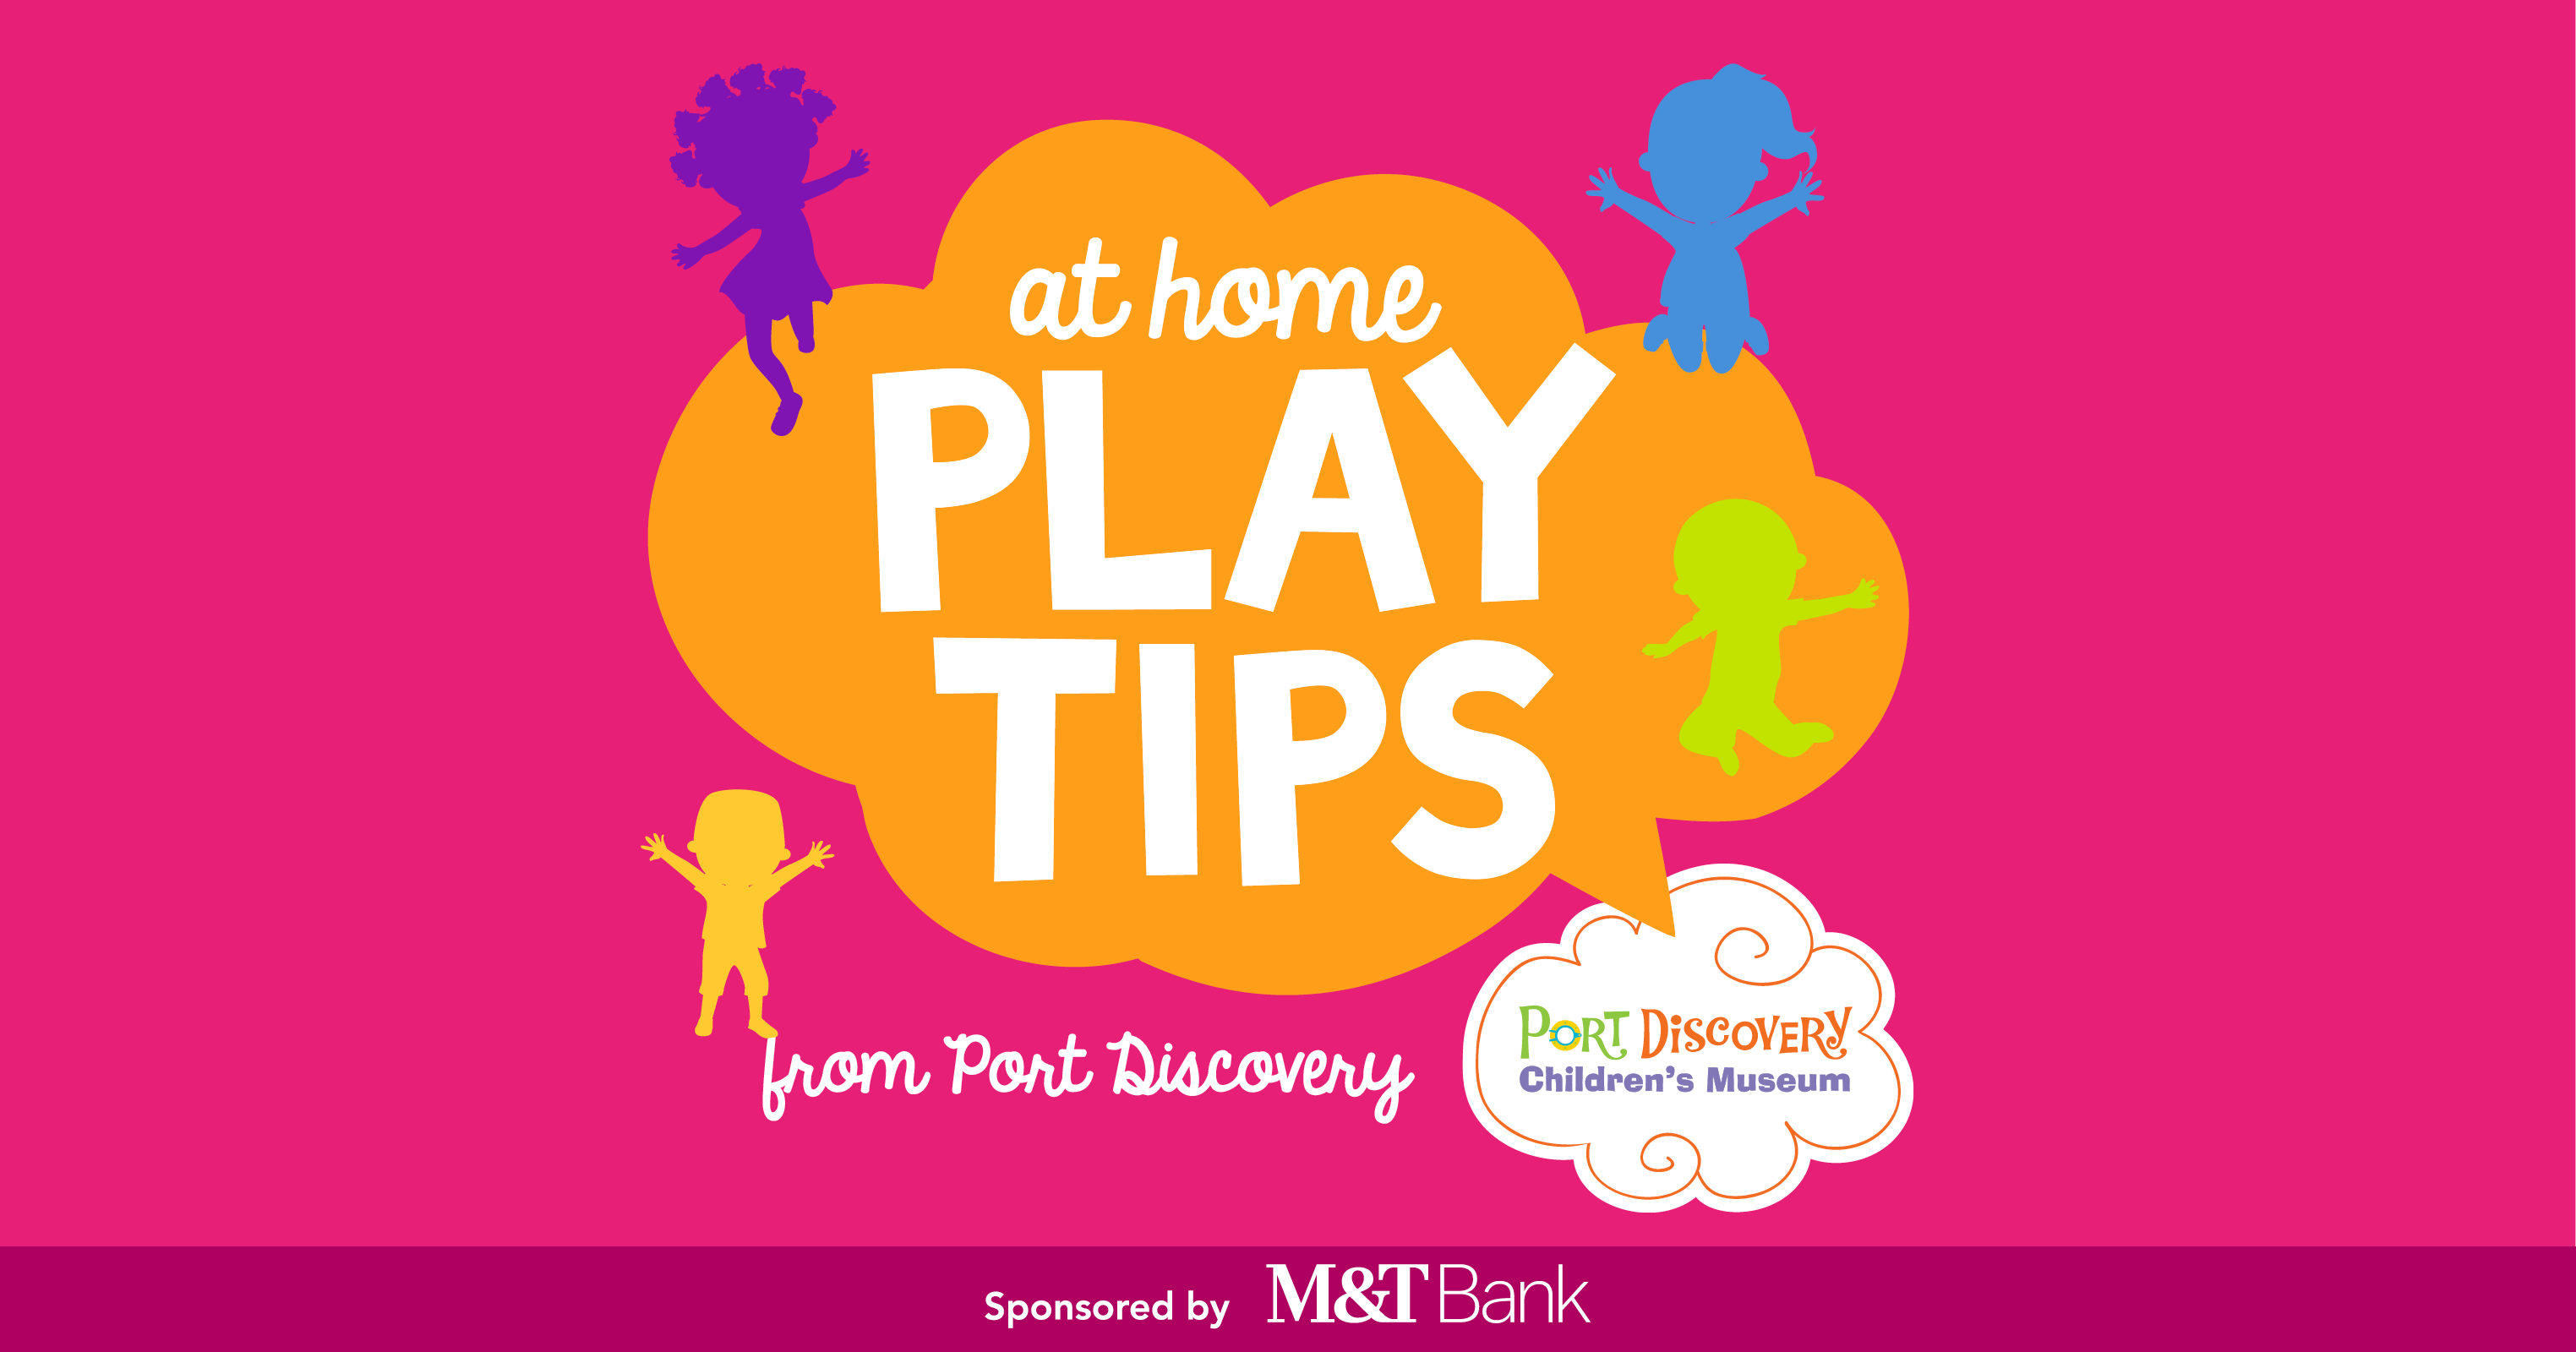 Play at Home Tips sponsored by M&T Bank